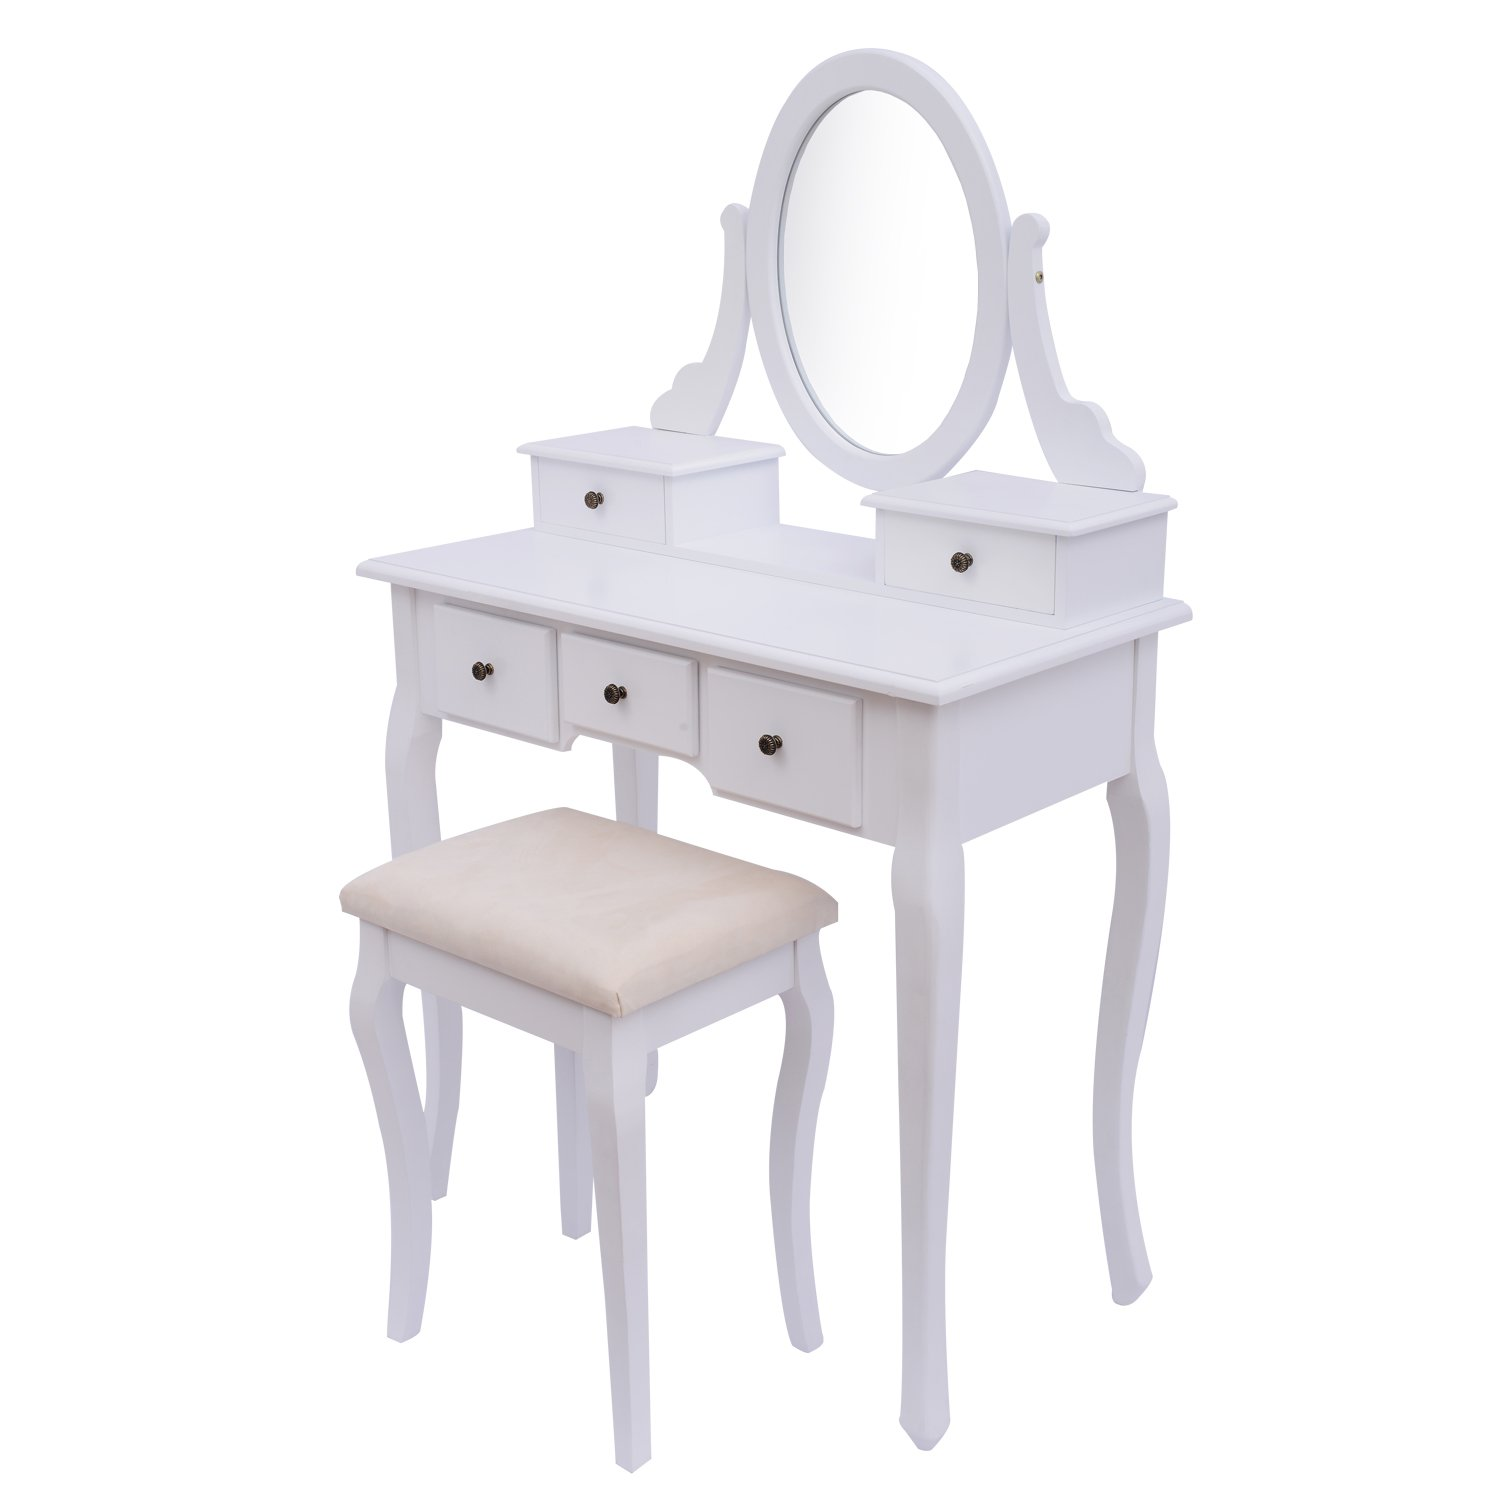 Clearance homcom antique style shabby chic dressing table with clearance homcom antique style shabby chic dressing table with vanity mirror stool white amazon garden outdoors geotapseo Images